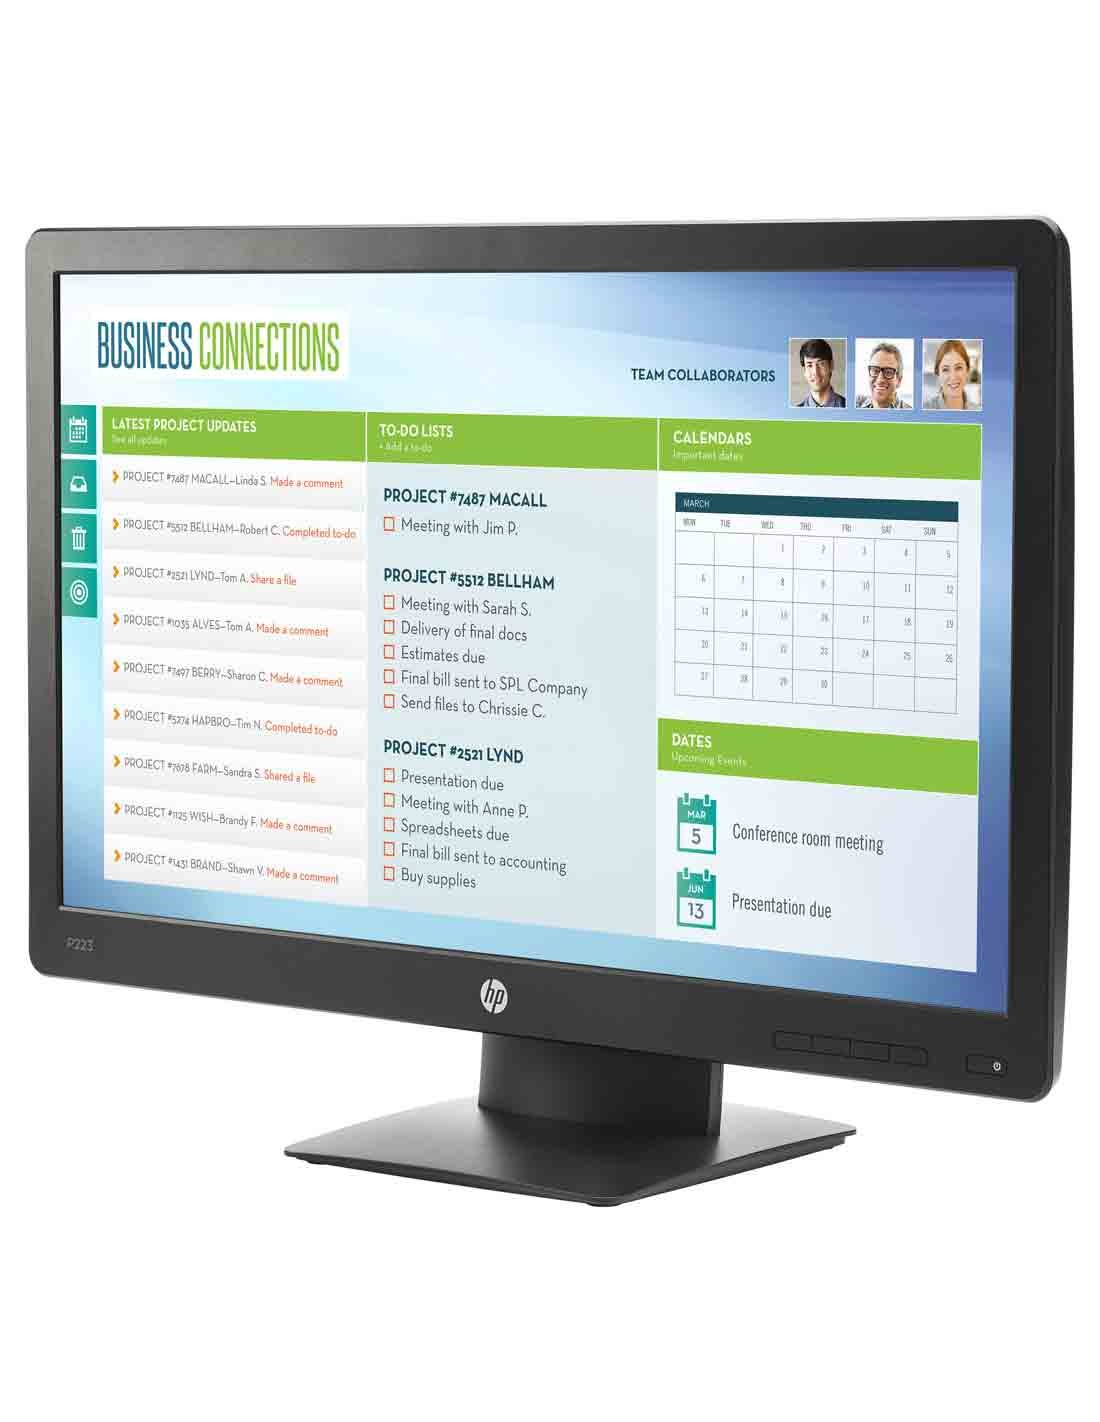 HP ProDisplay P223 21.5-inch Monitor at the cheapest price and fast free delivery in Dubai